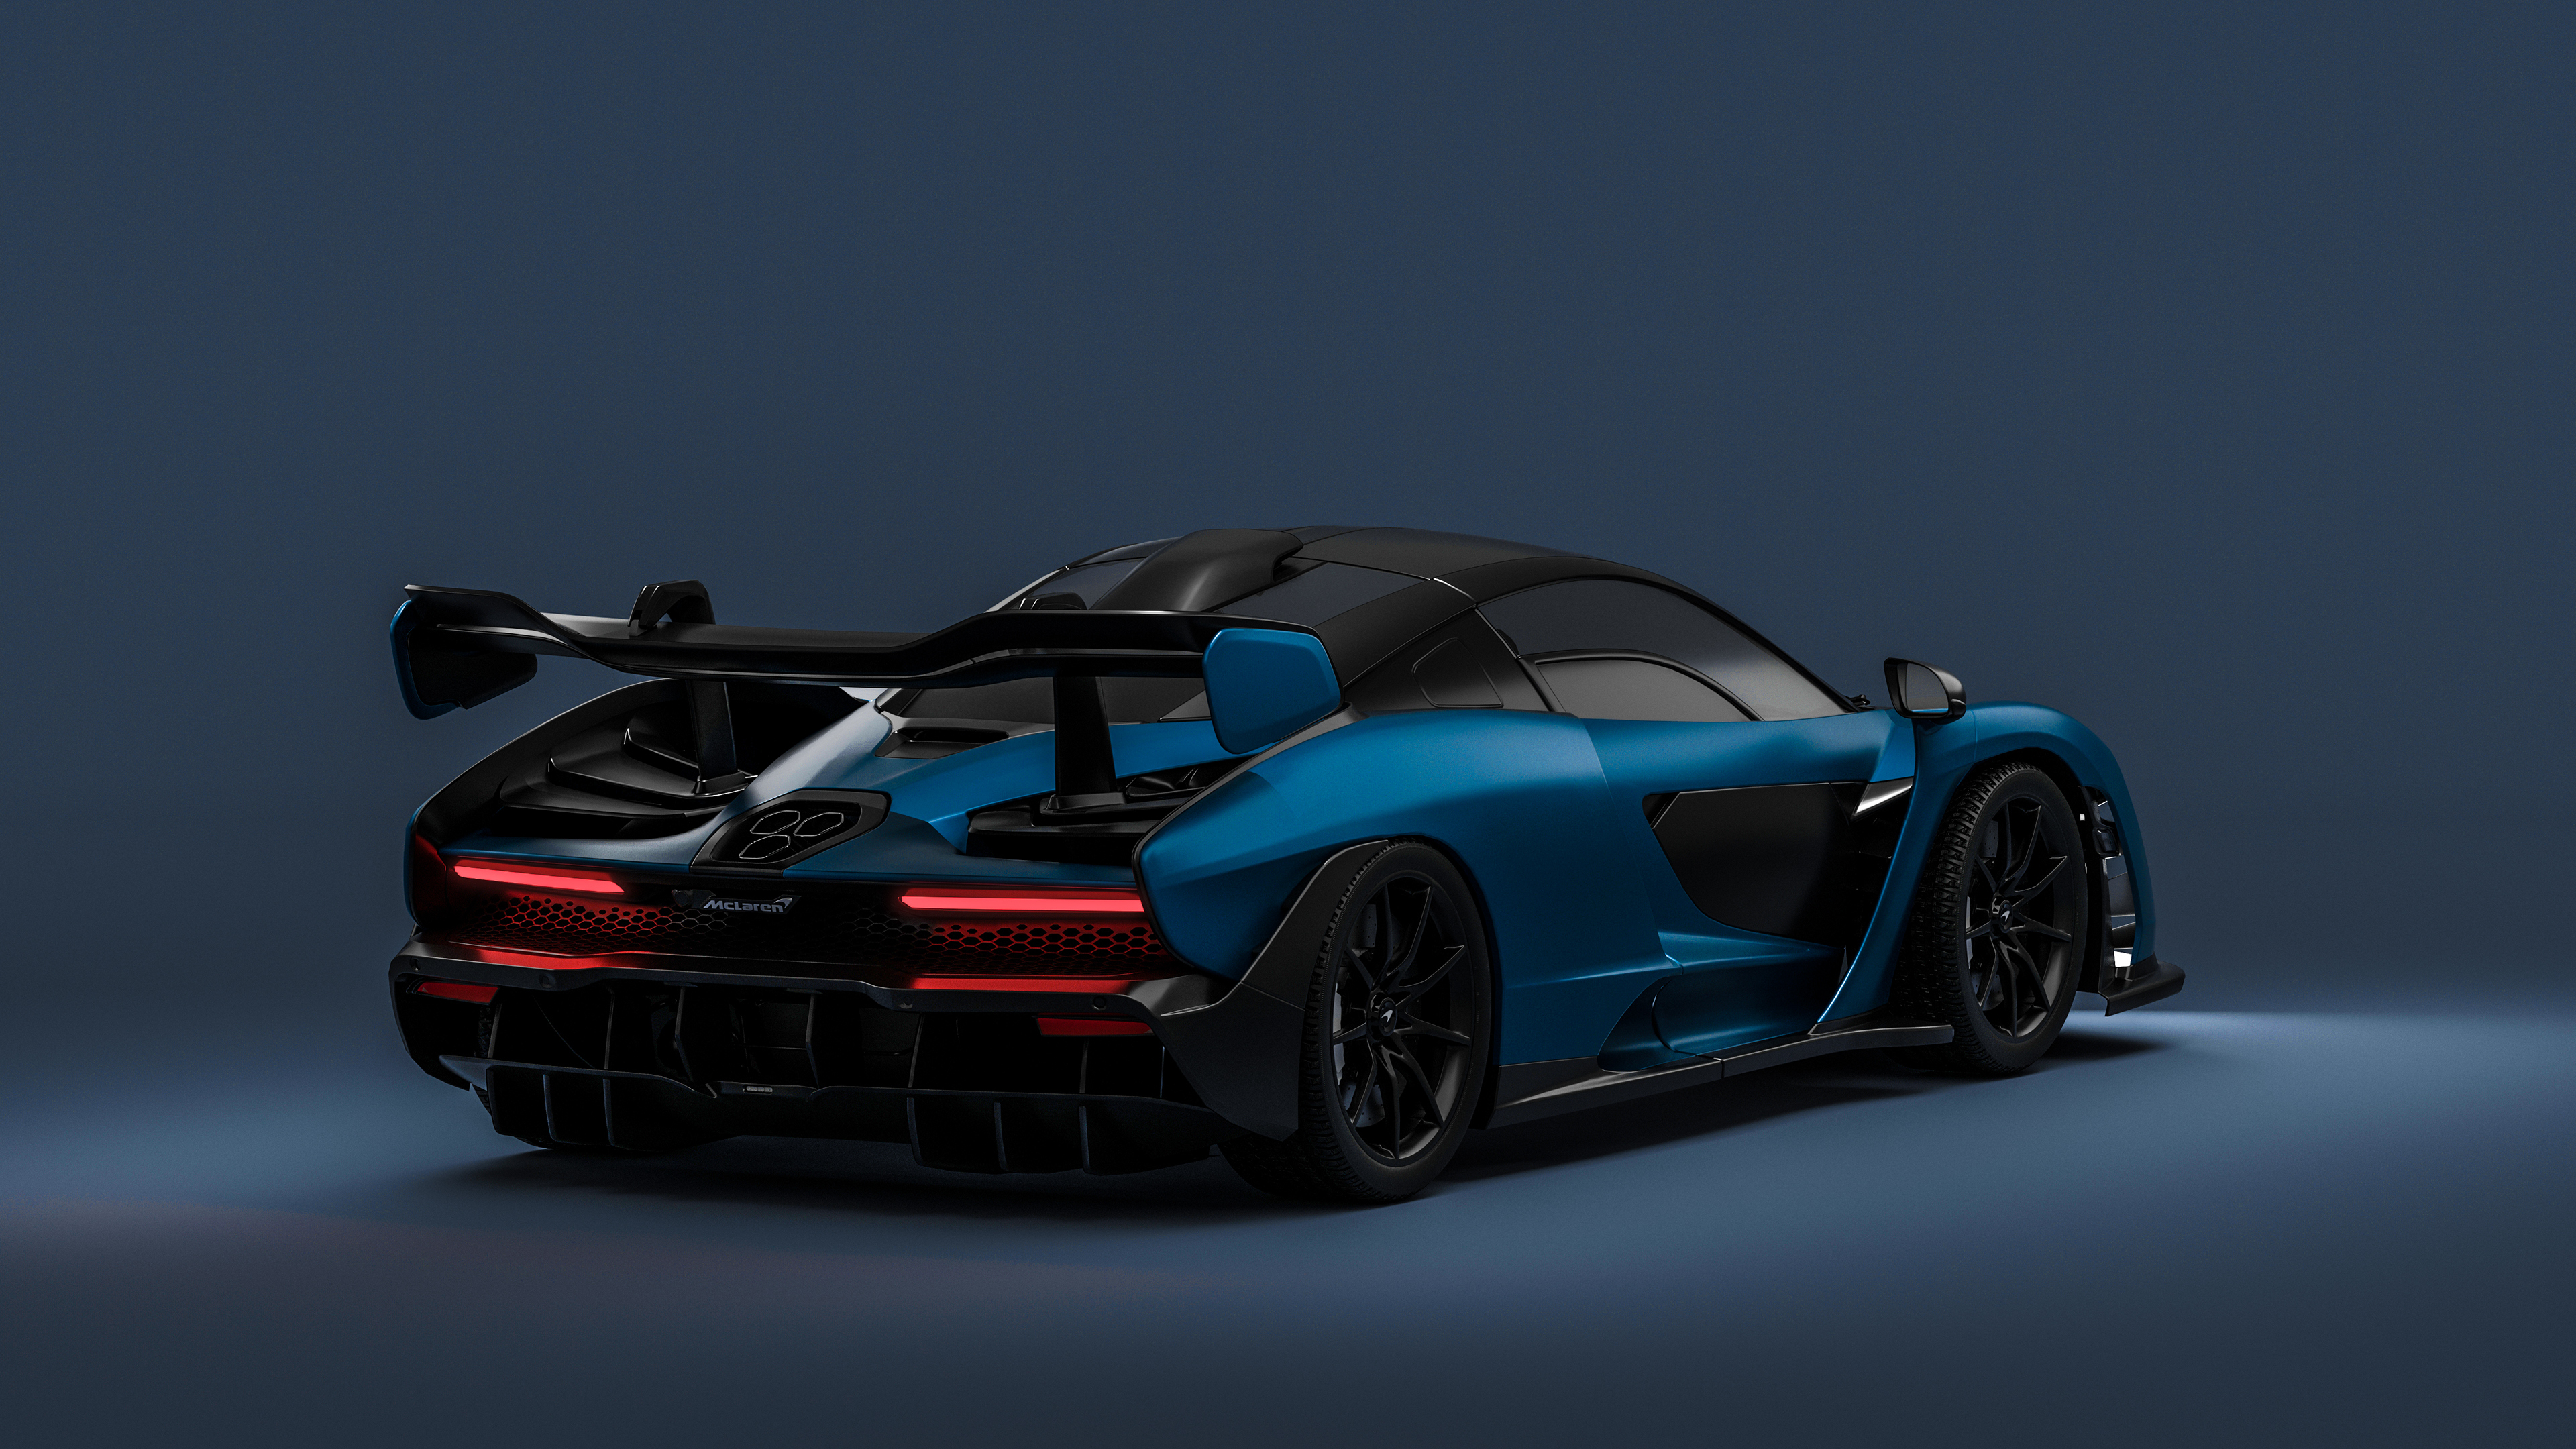 3840x2160 Mclaren Senna Rear 4K 4k HD 4k Wallpapers ...